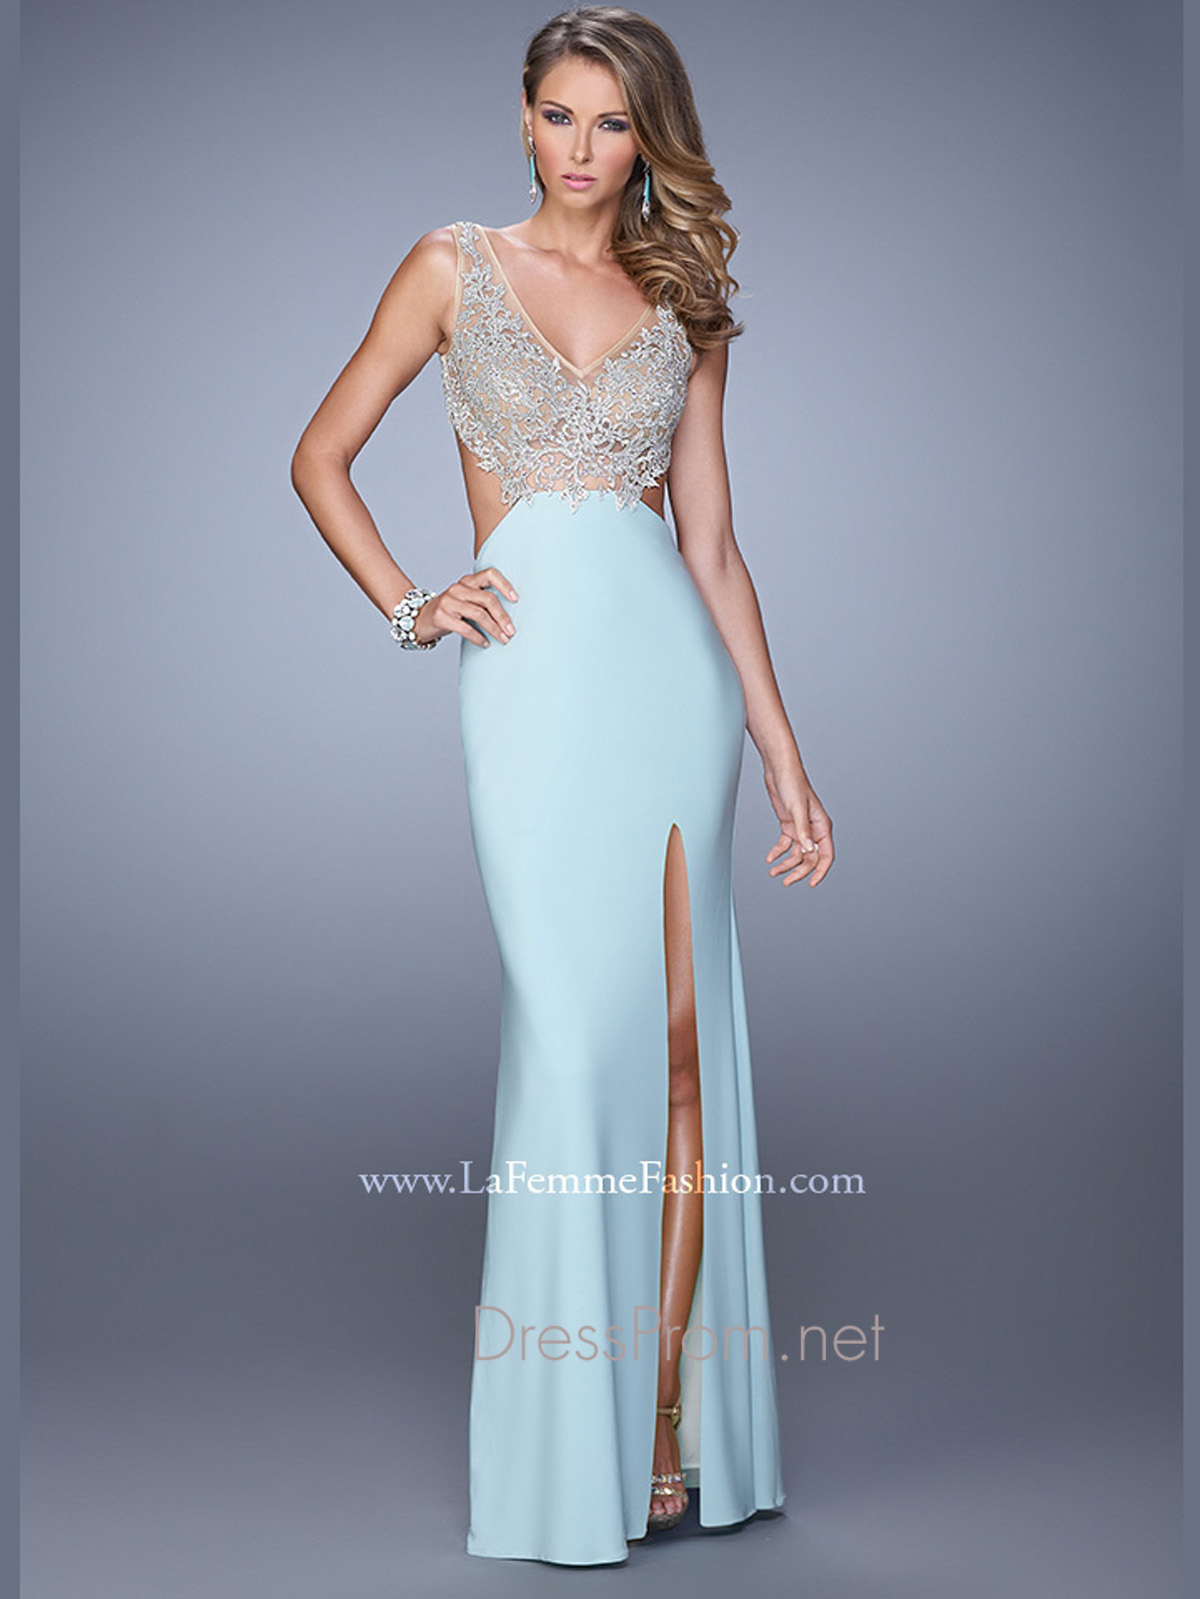 Prom Dresses By Femme - Plus Size Prom Dresses